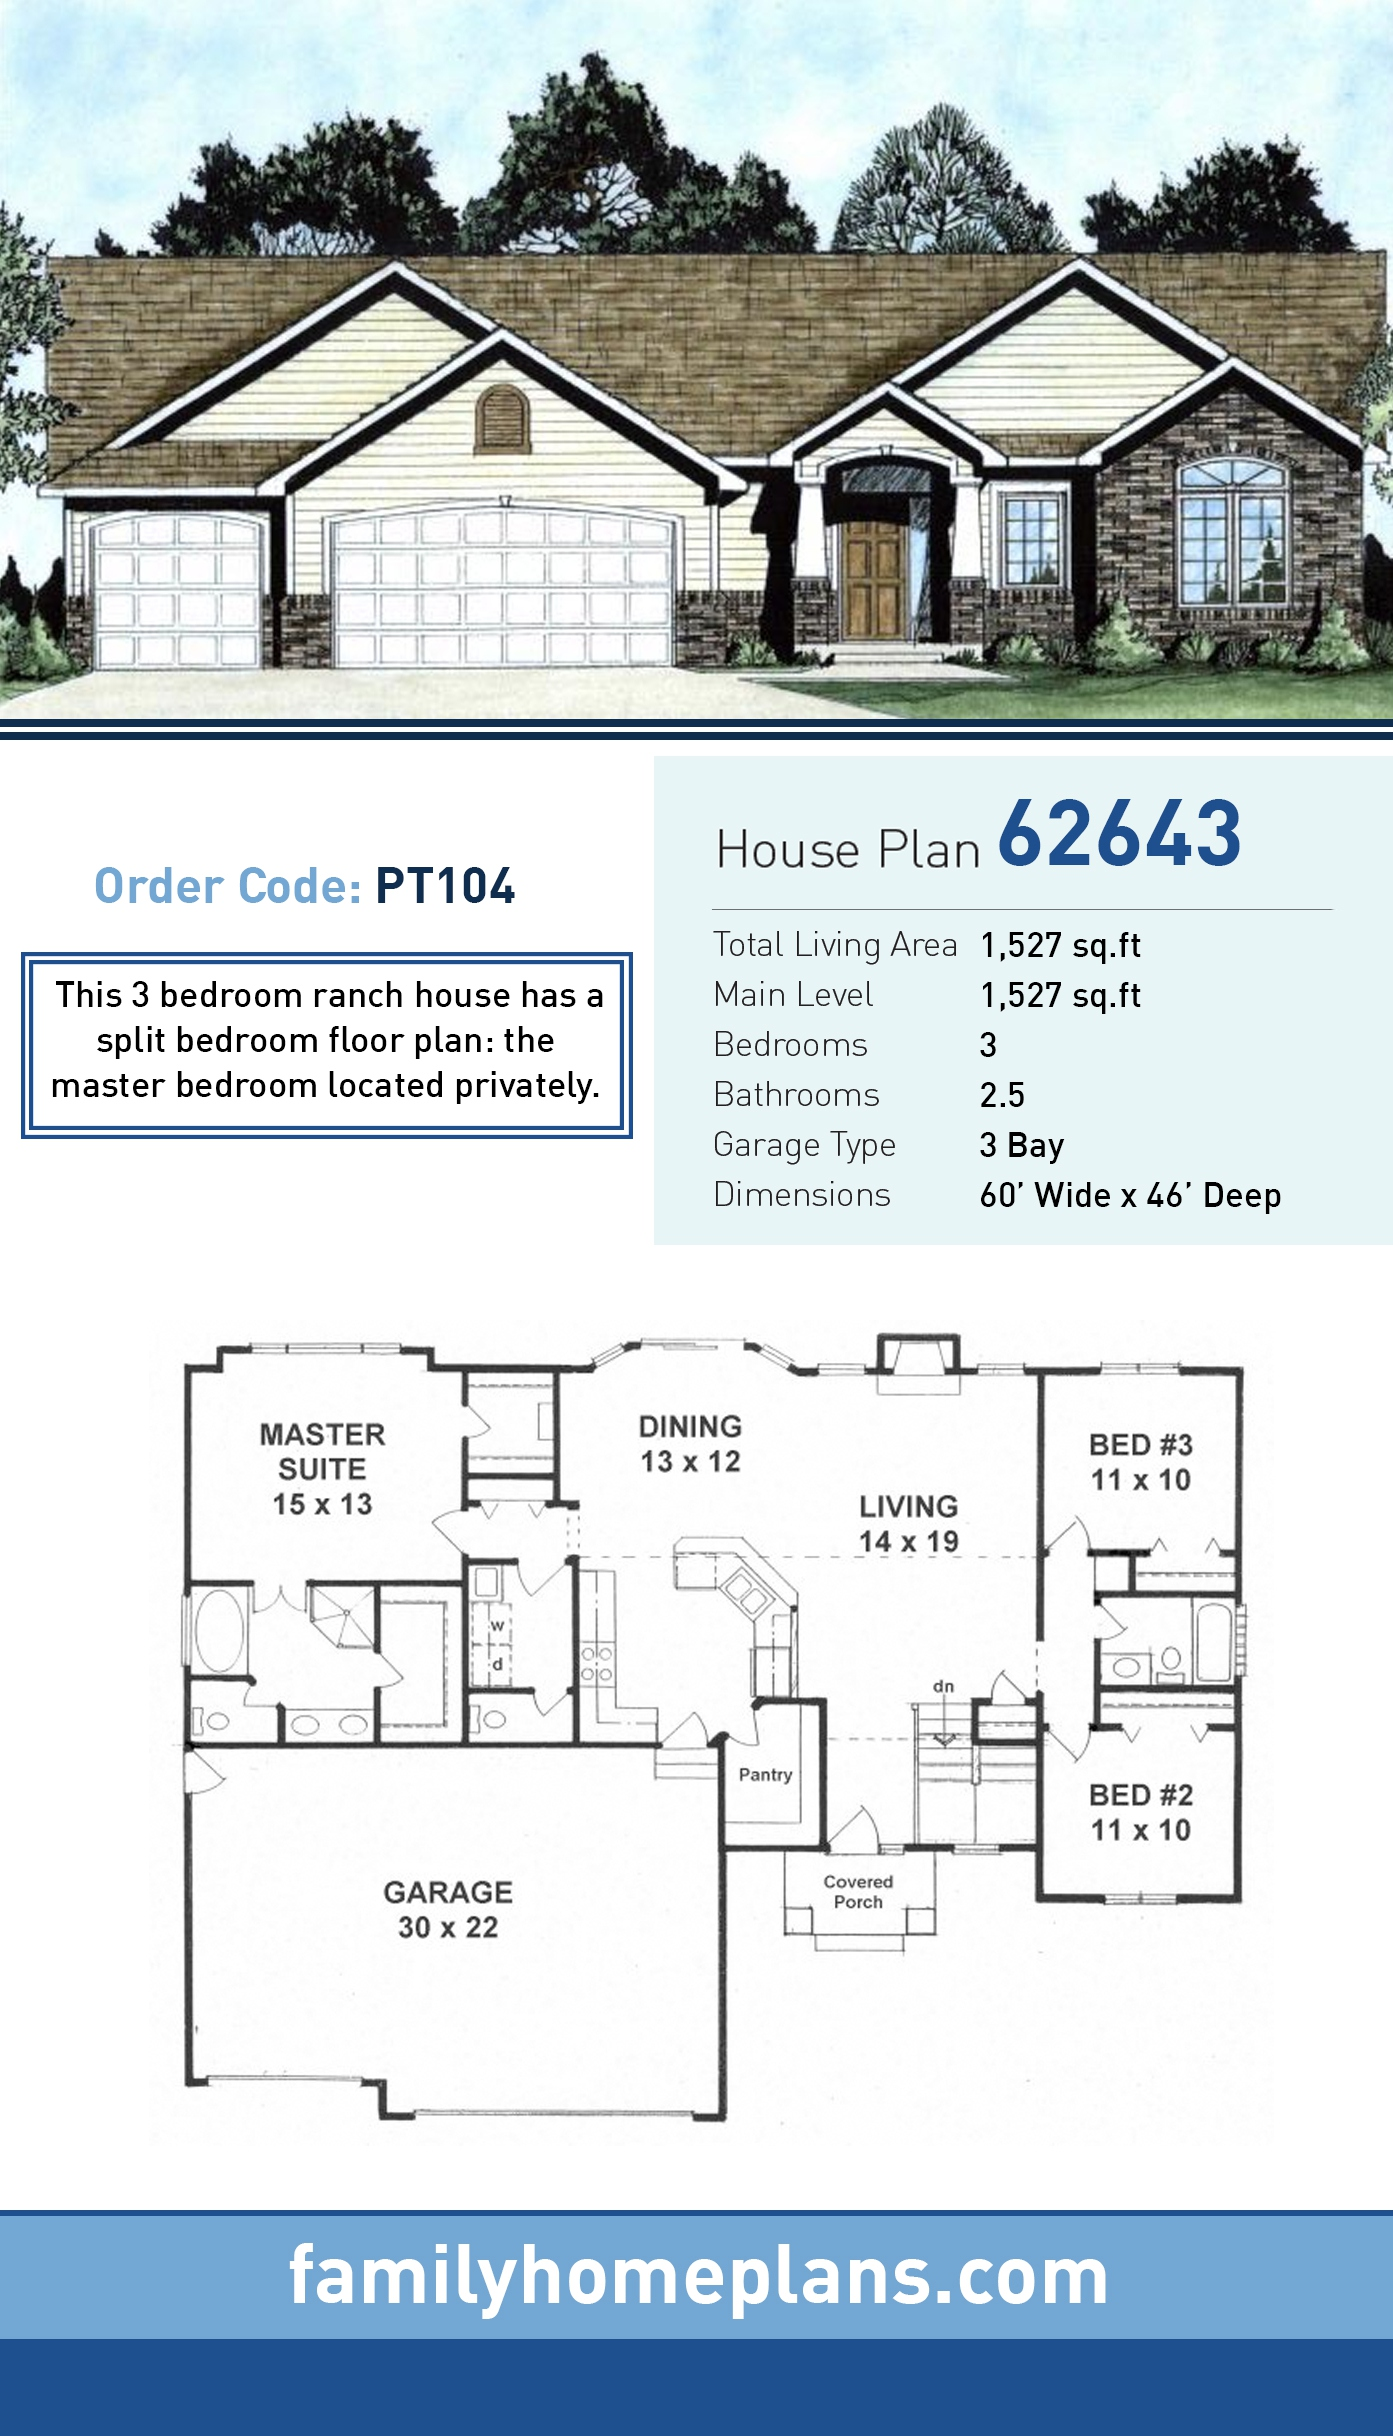 Traditional House Plan 62643 with 3 Beds, 3 Baths, 3 Car Garage